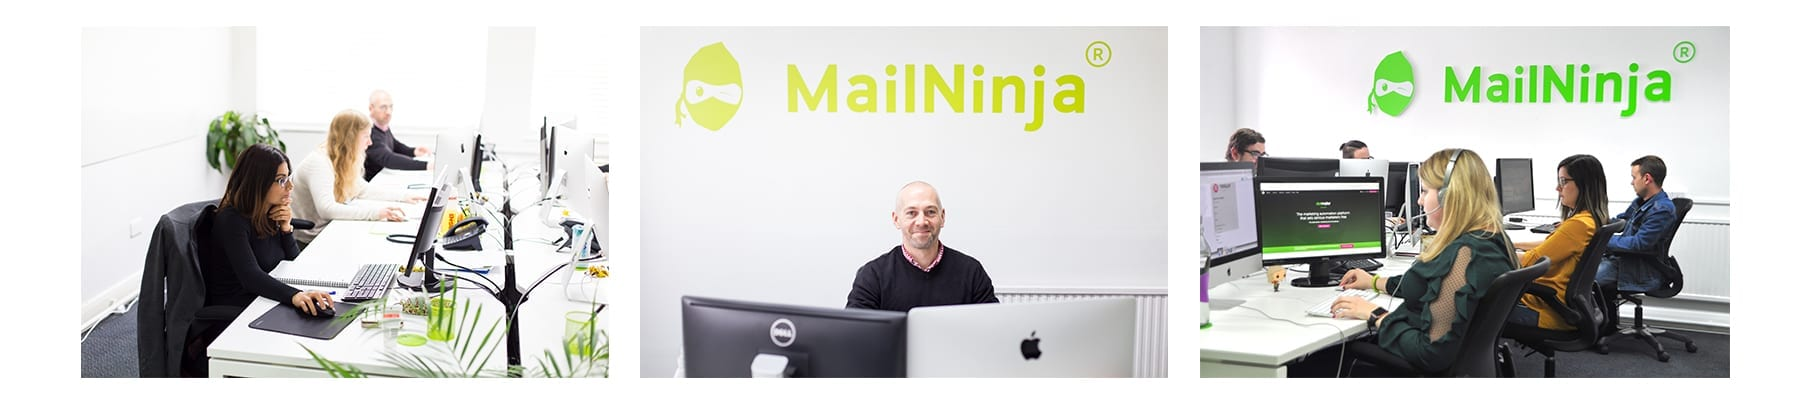 Mail Ninja Office